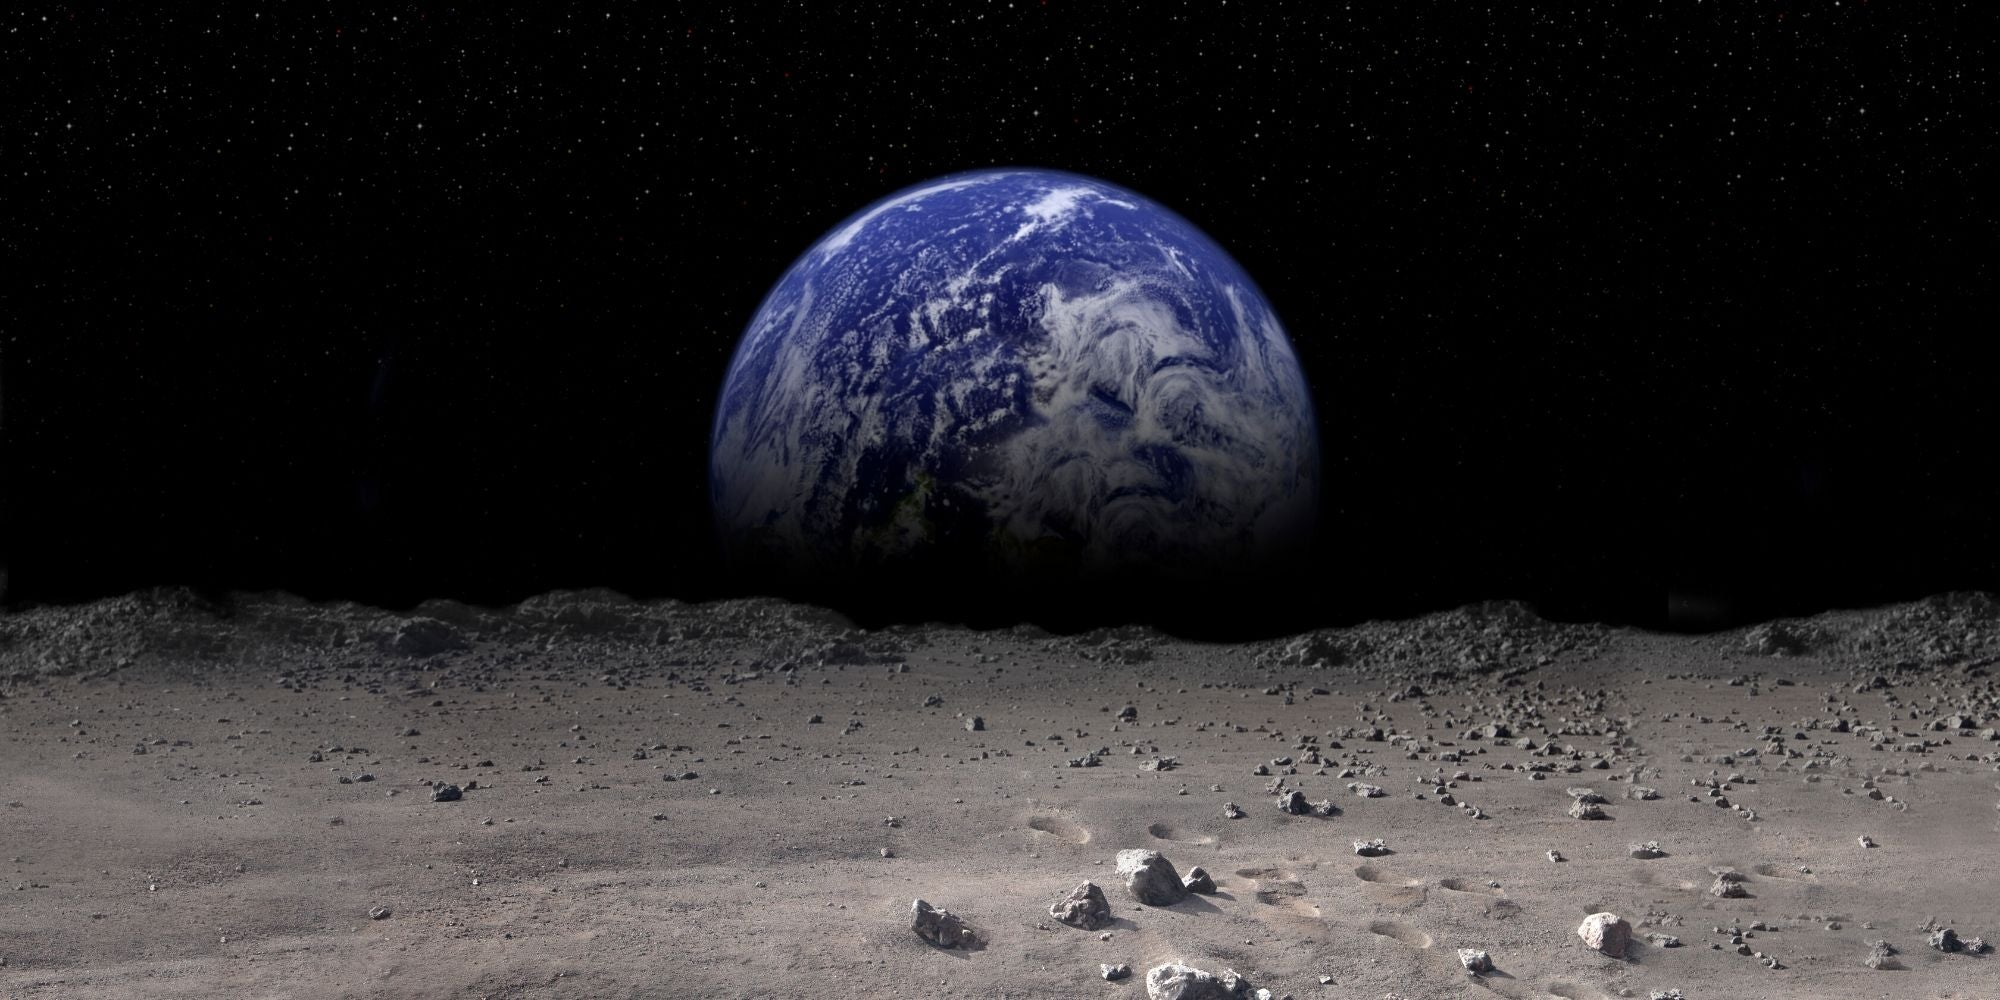 Human urine could be key to putting buildings on the moon, space agency says - indy100